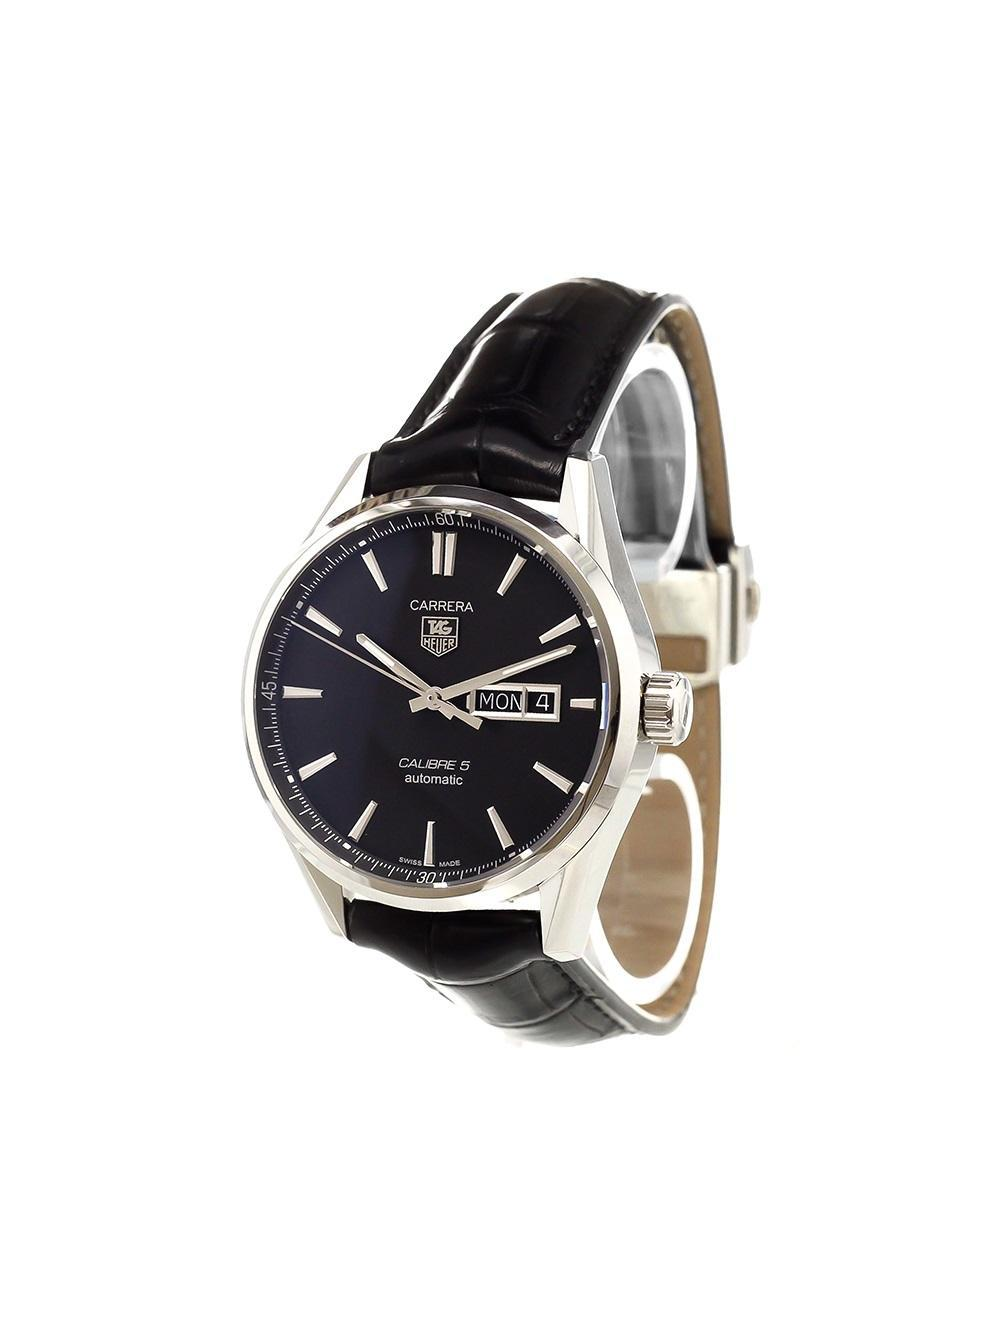 lyst tag heuer 39 carrera calibre 5 39 analog watch in black. Black Bedroom Furniture Sets. Home Design Ideas